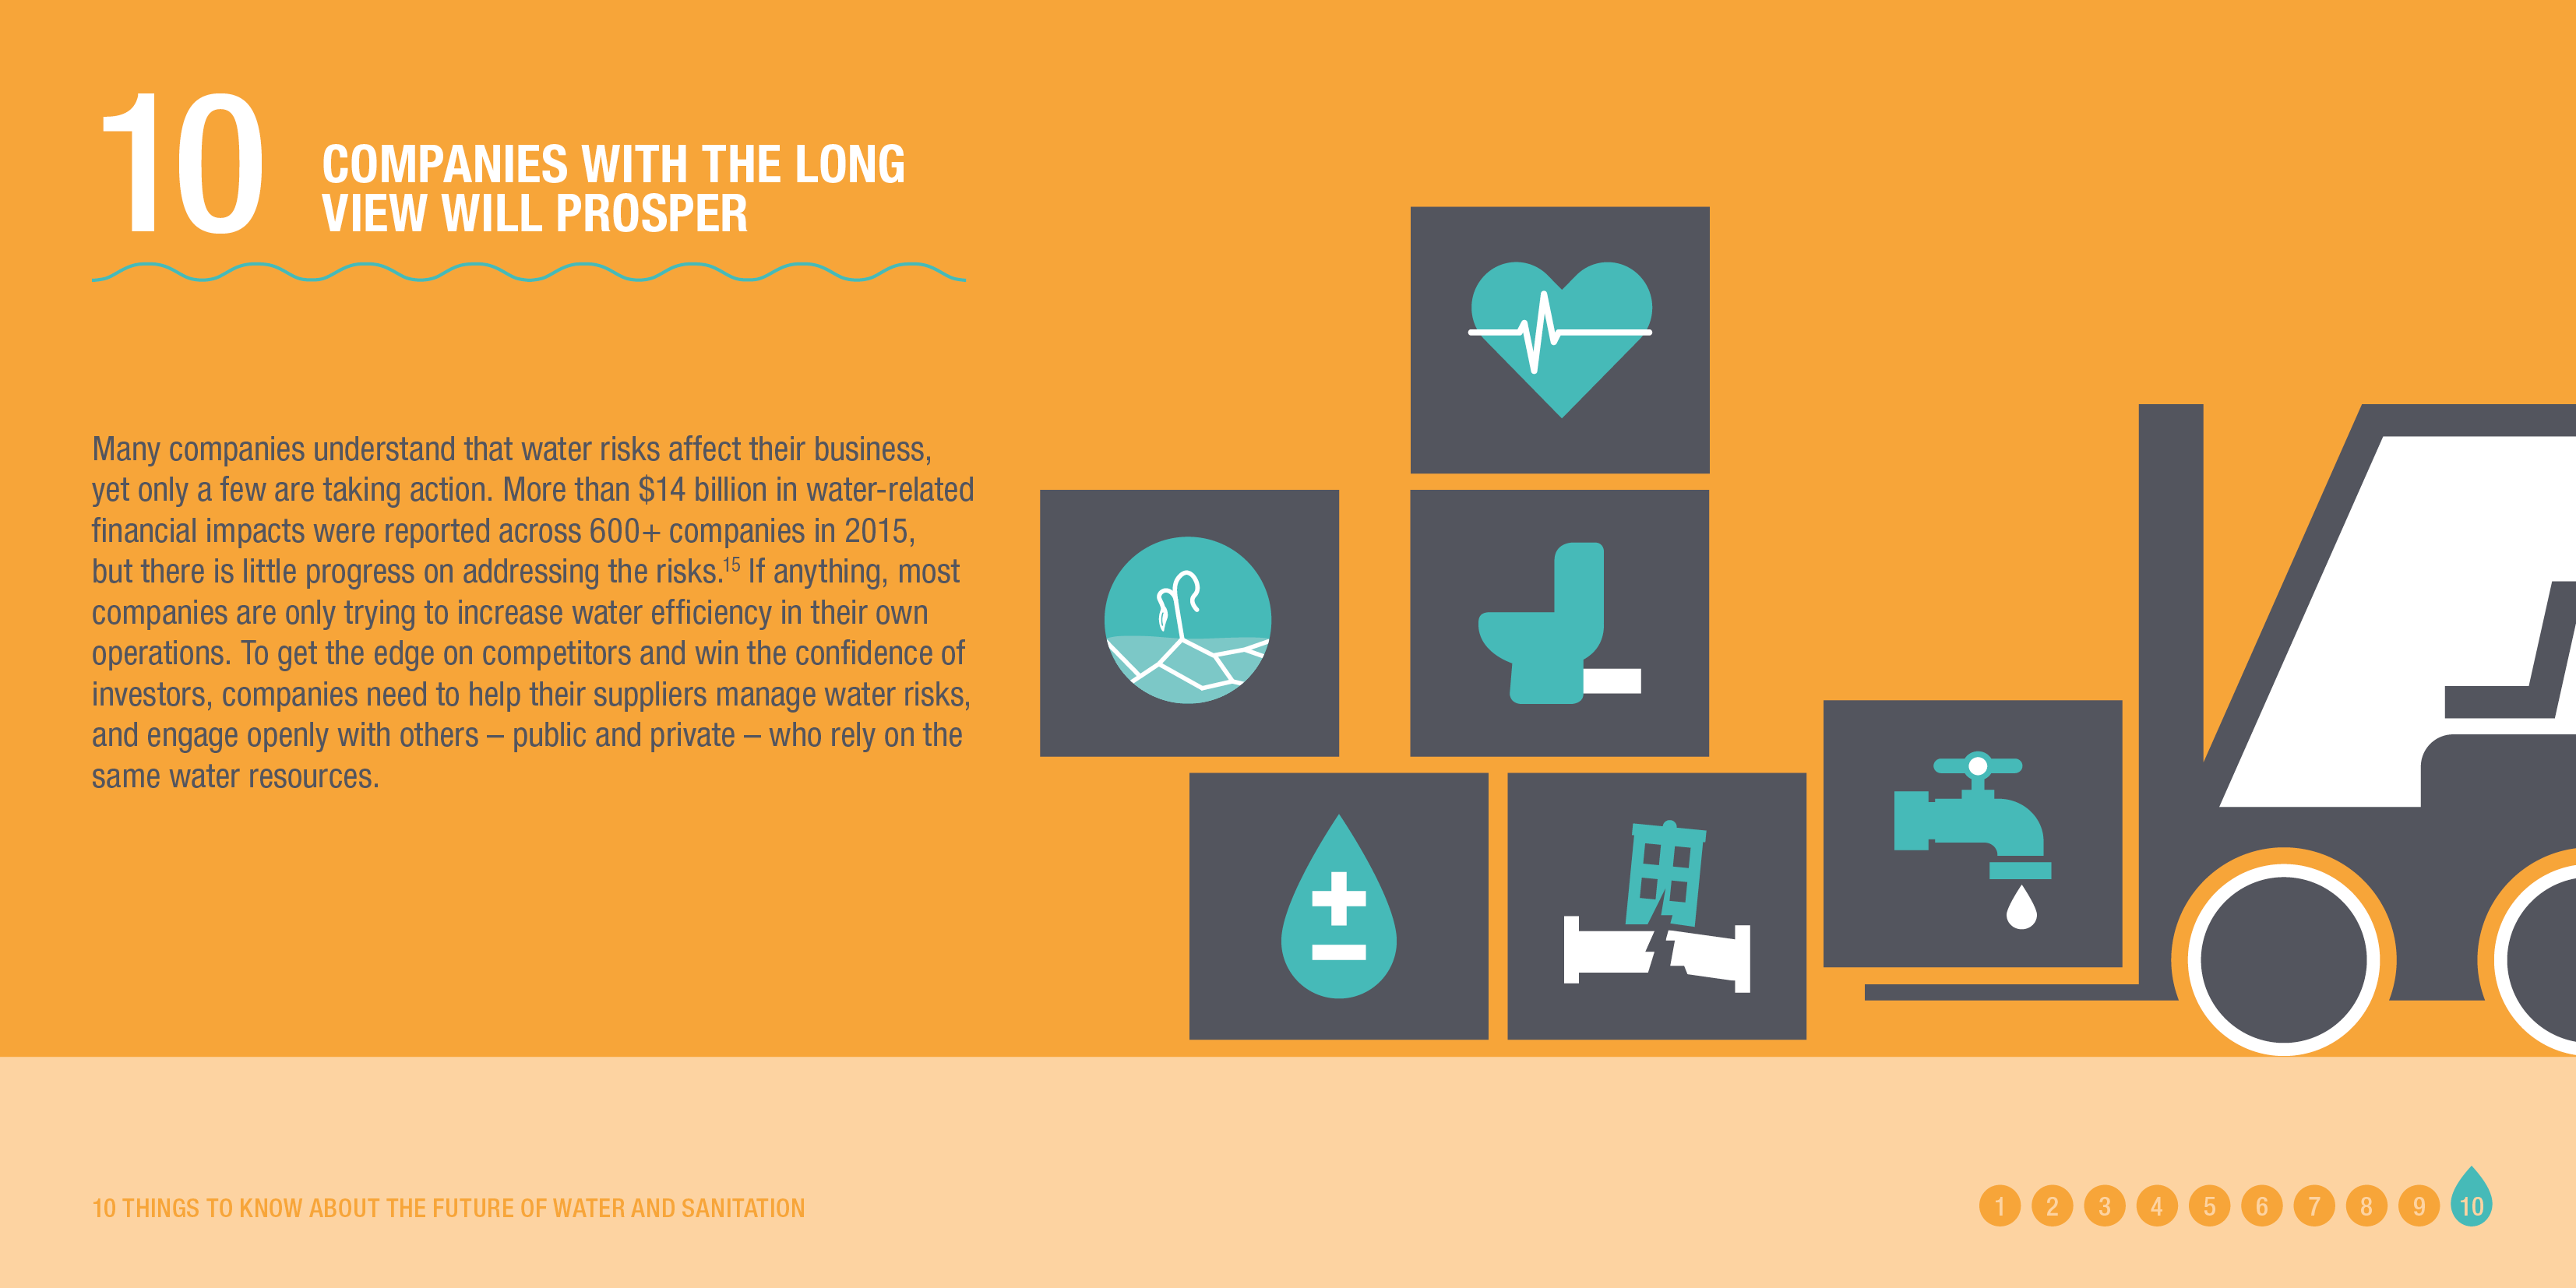 Infographic: COMPANIES WITH THE LONG VIEW WILL PROSPER